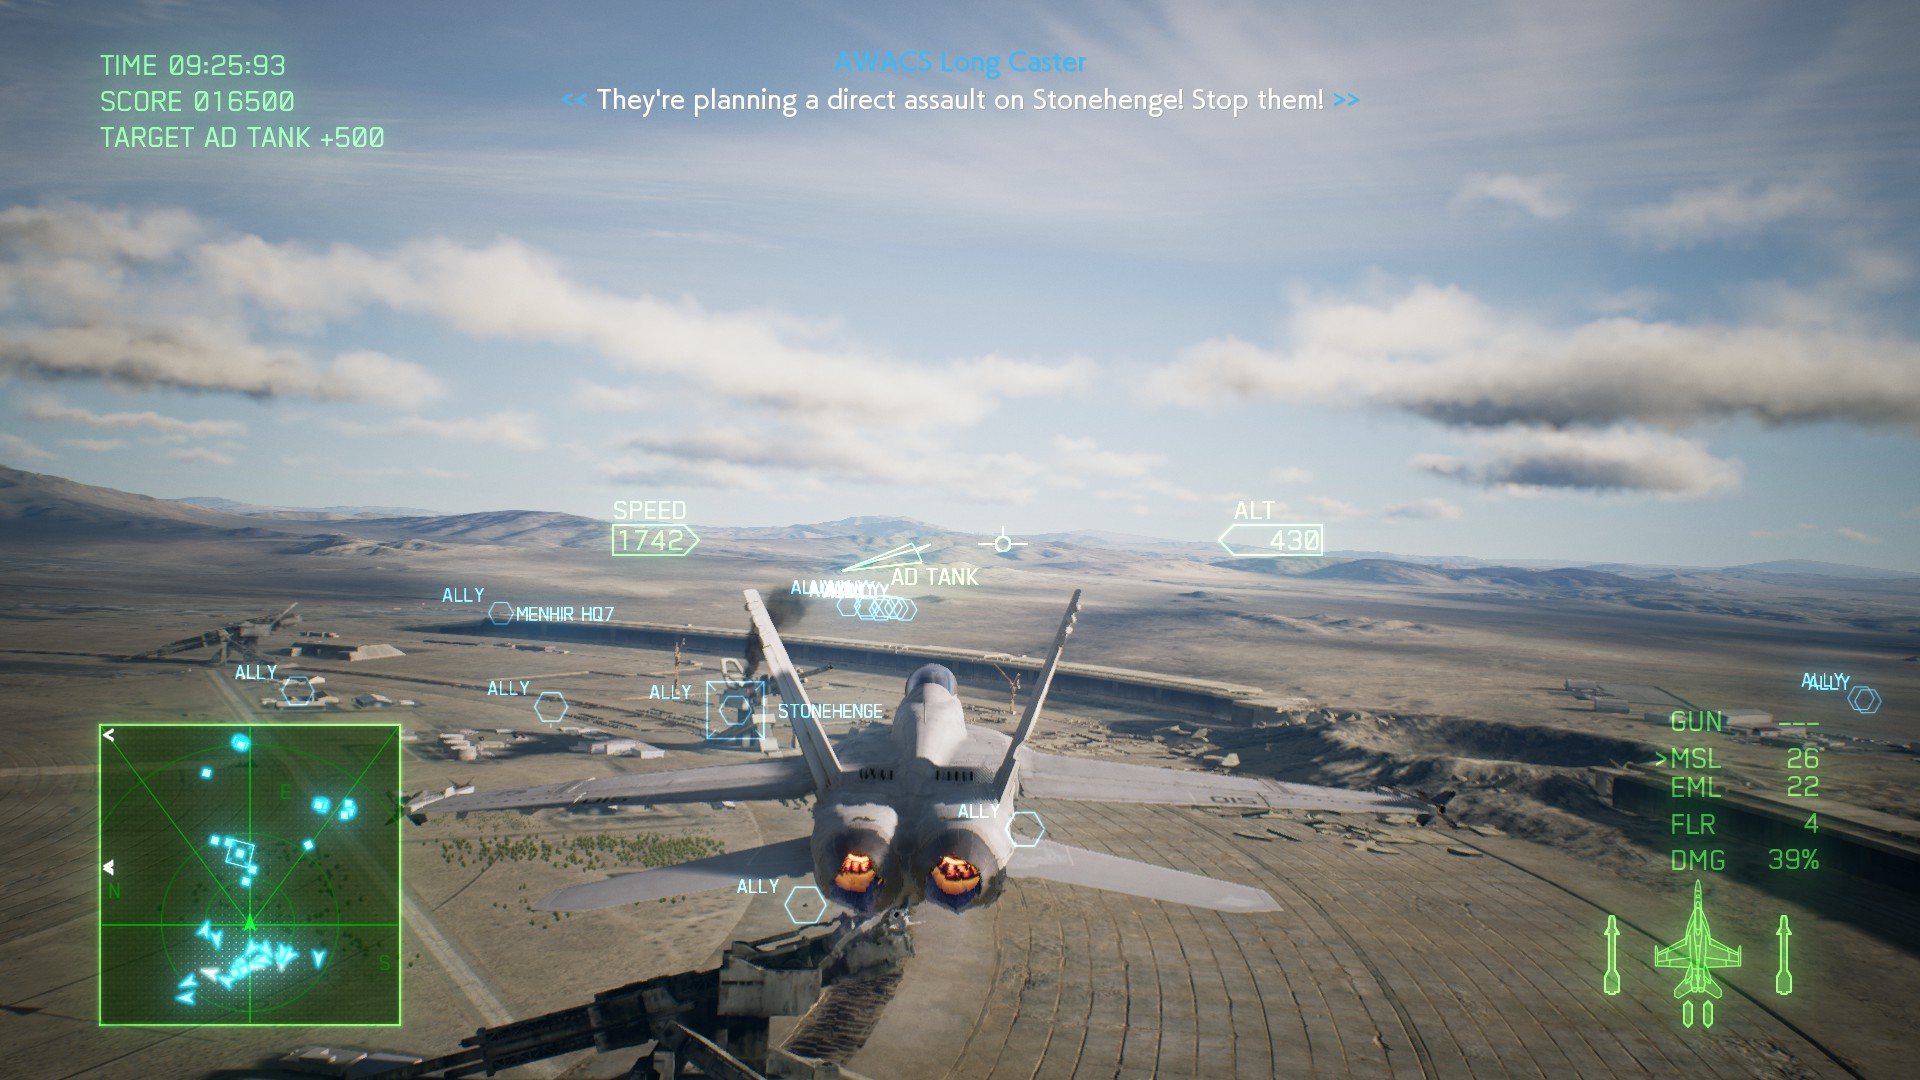 Ace Combat 7 Skies Unknown Review And Reflection At The Mark The Infinite Zenith